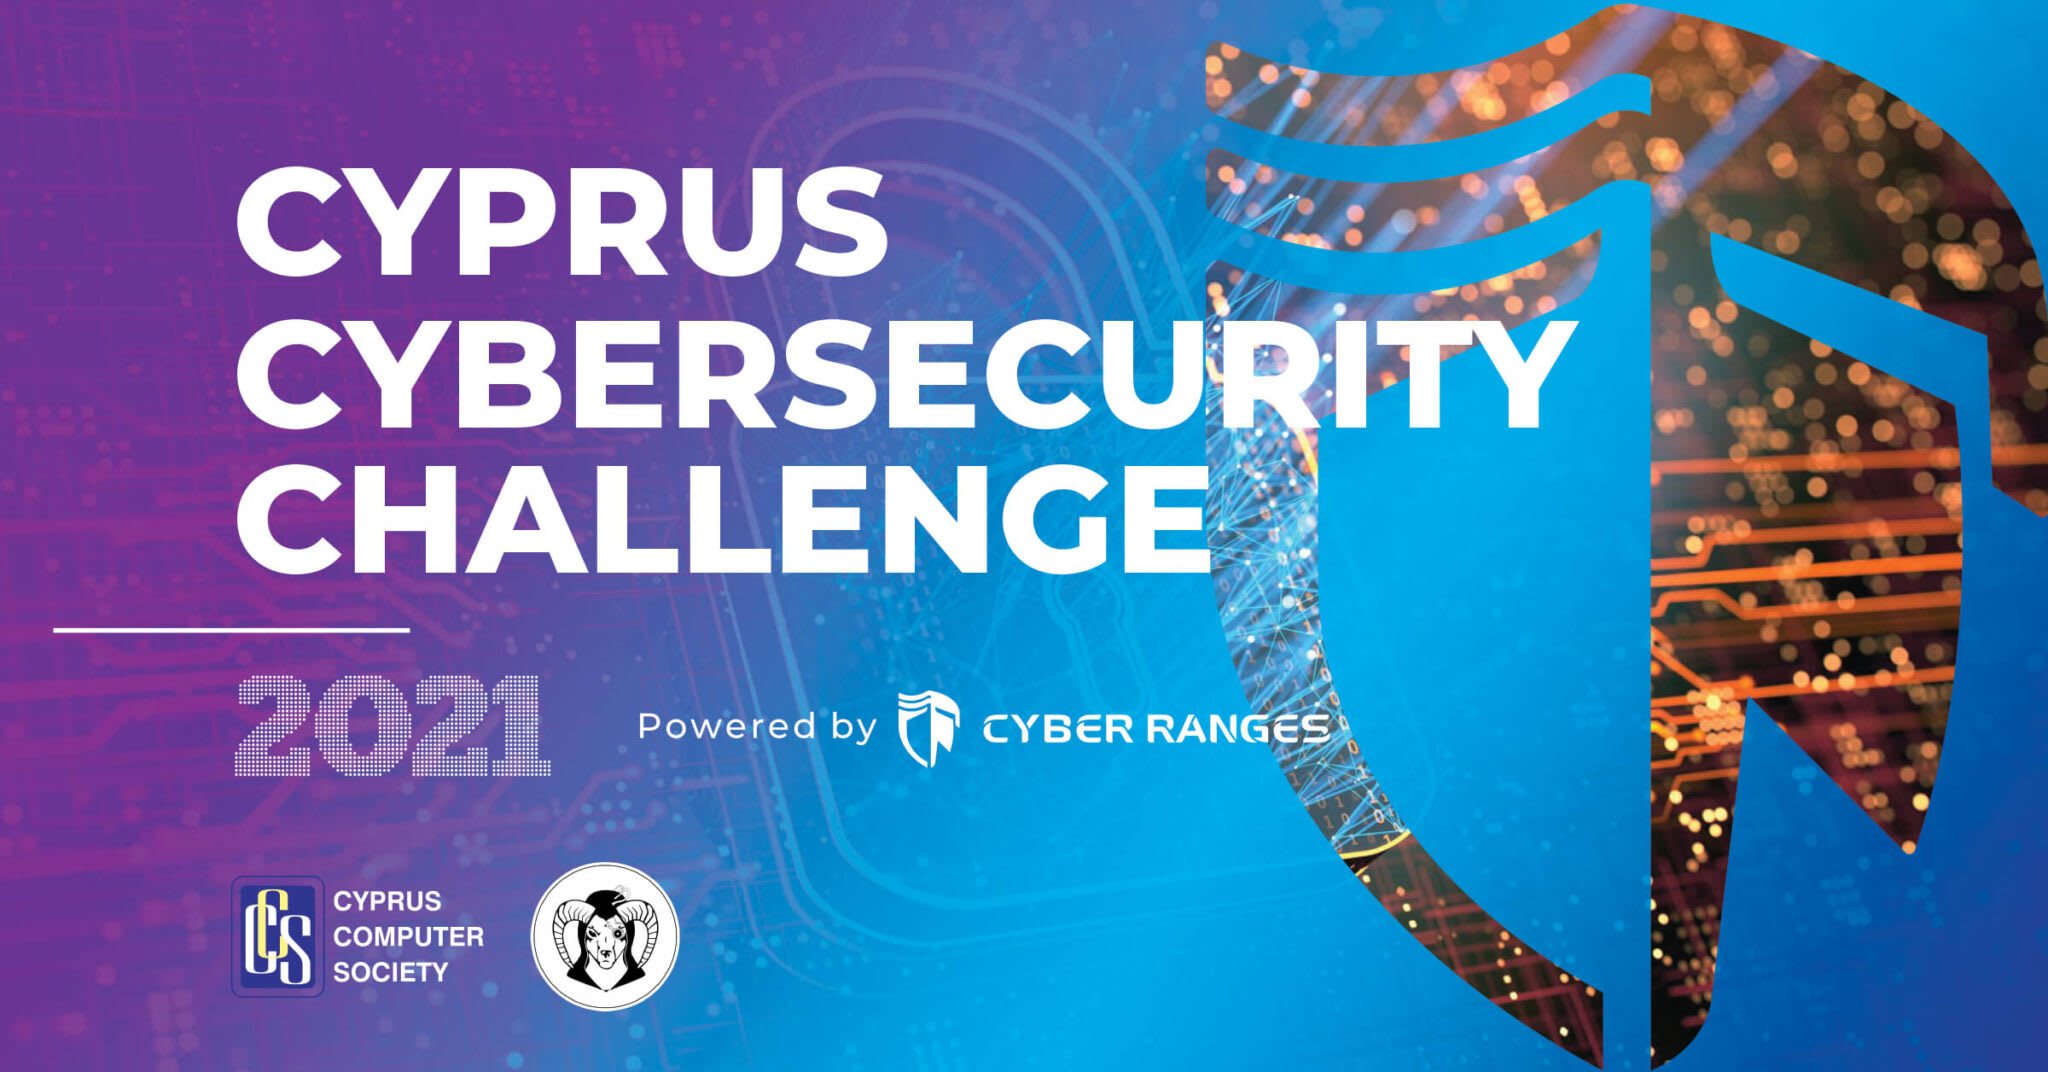 Cyprus Cyber Security Challenge 2021